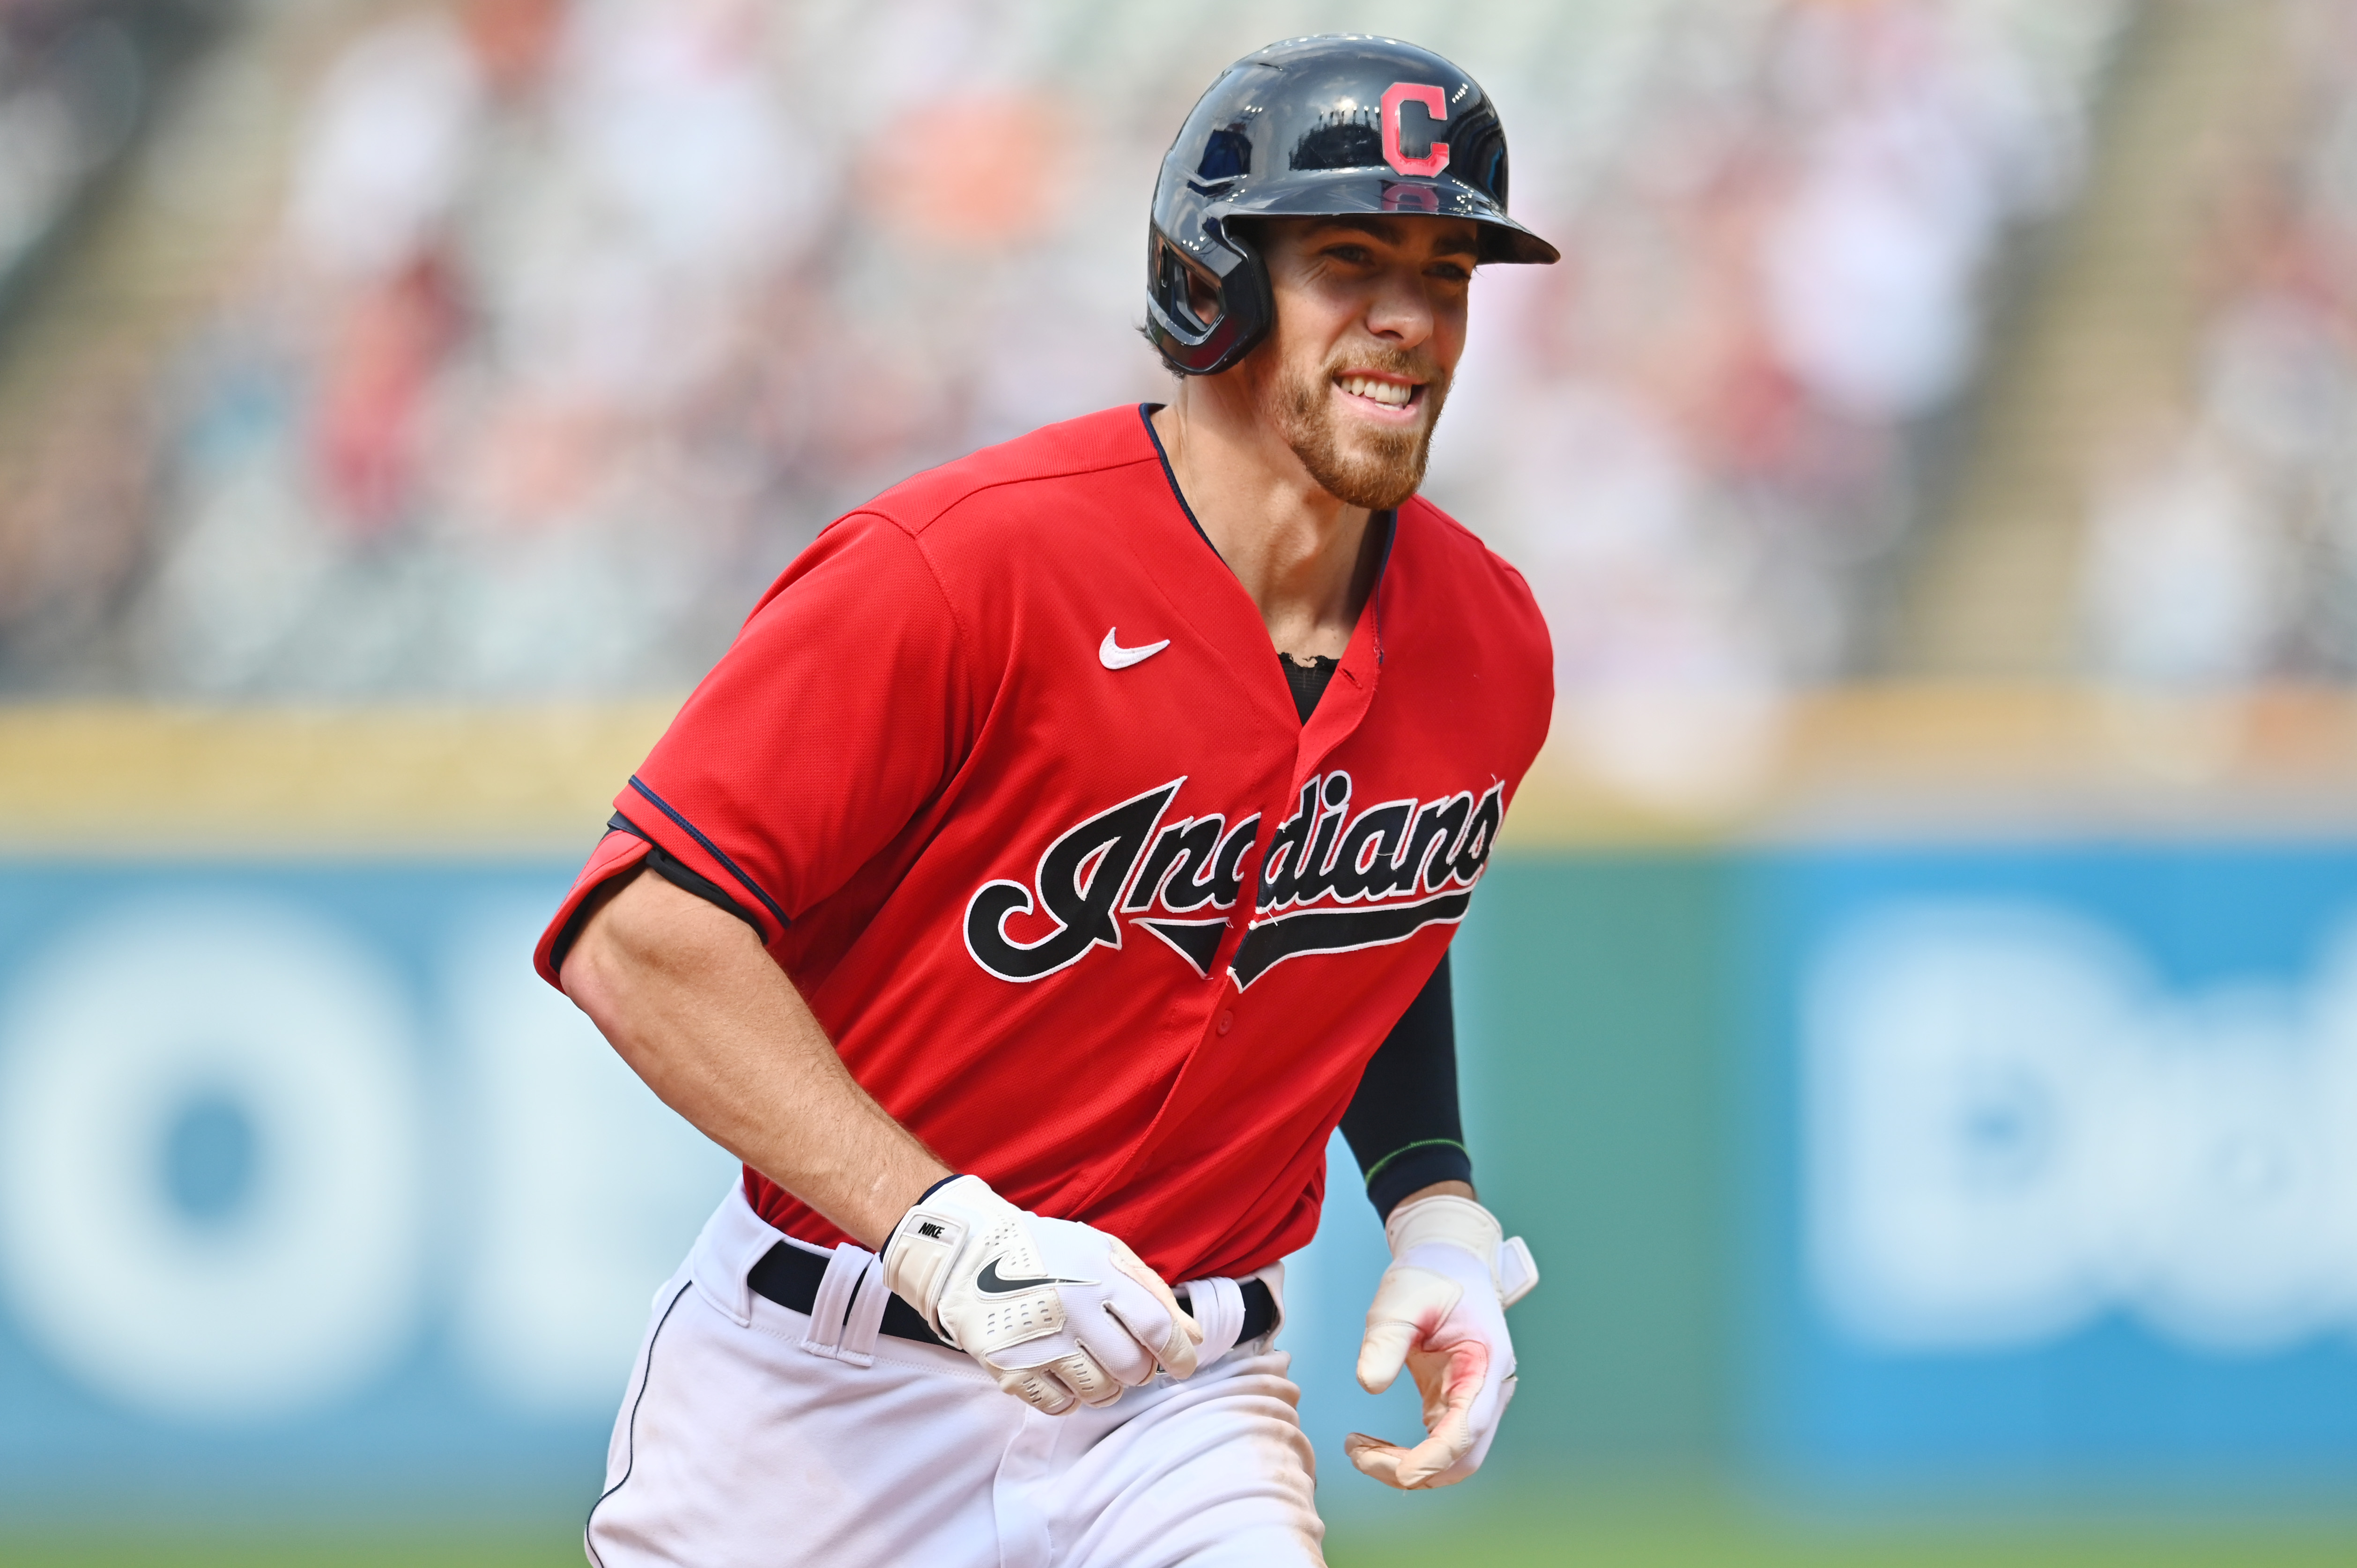 Oakland Athletics vs Cleveland Indians Prediction, 8/12/2021 MLB Pick, Tips and Odds